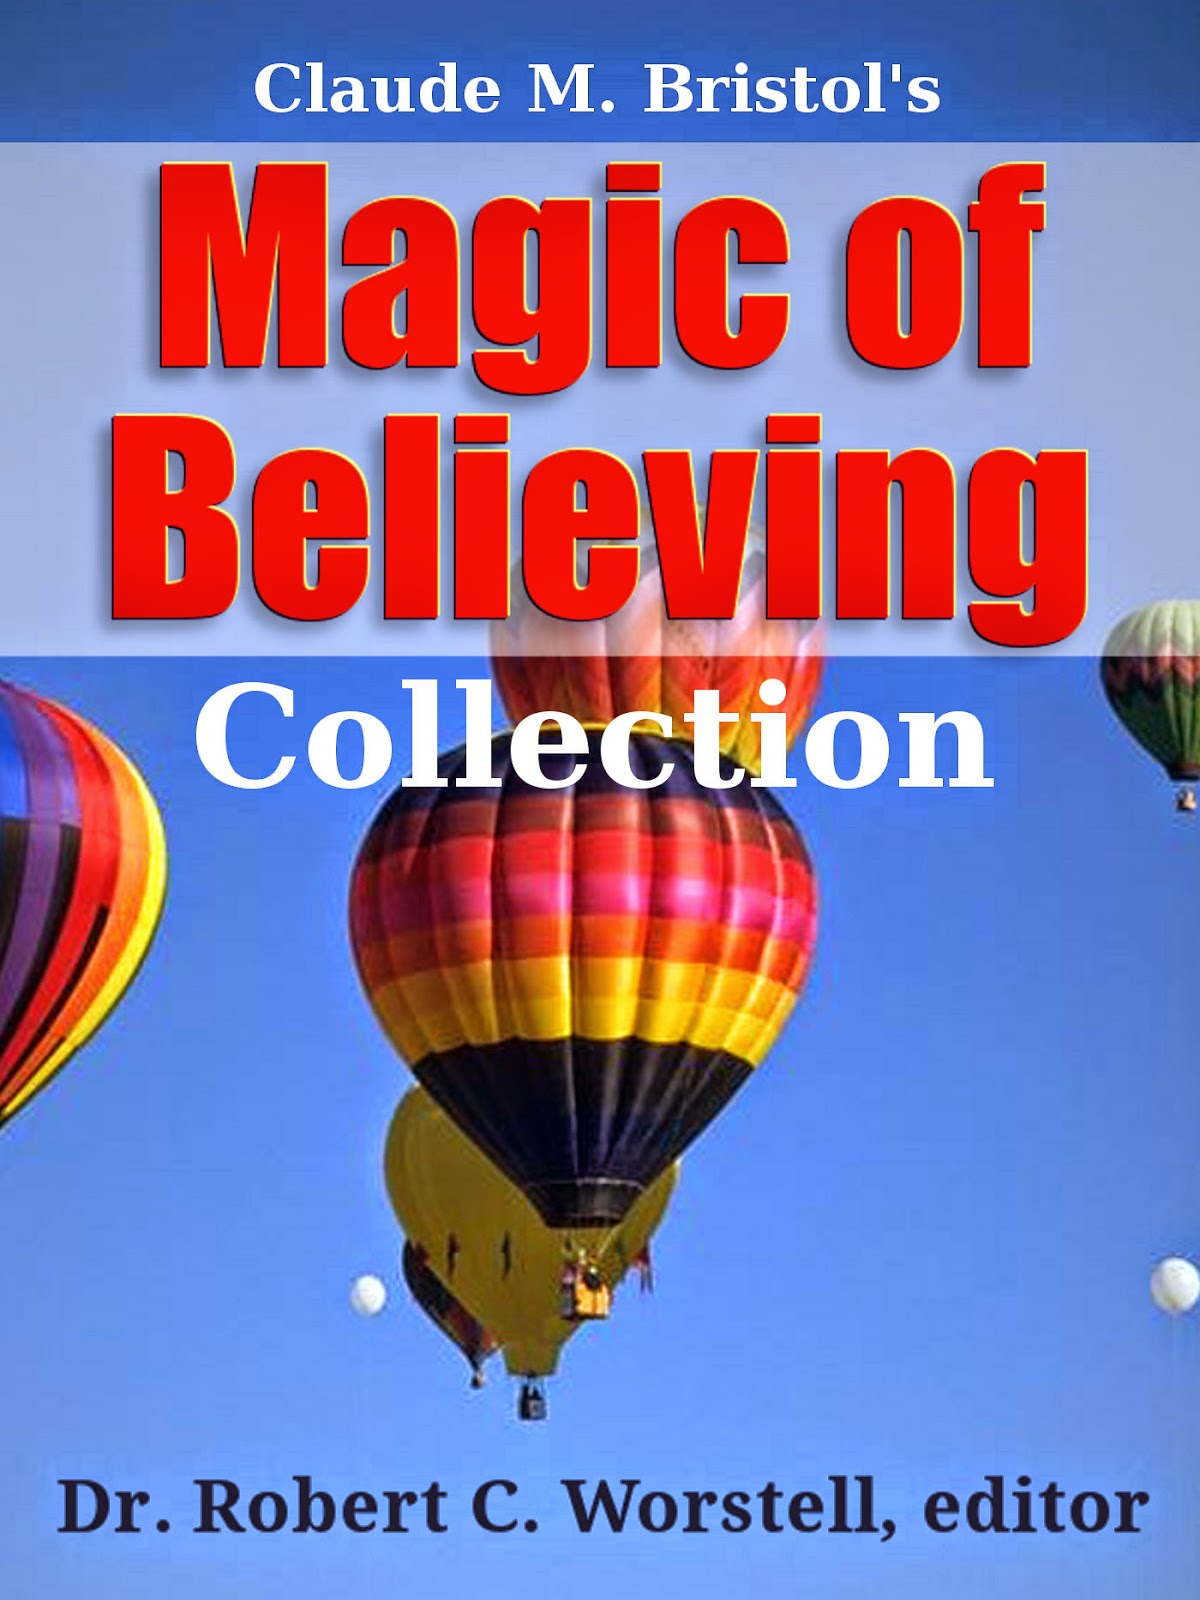 New Release - Claude M. Bristol's Magic of Believing Collection